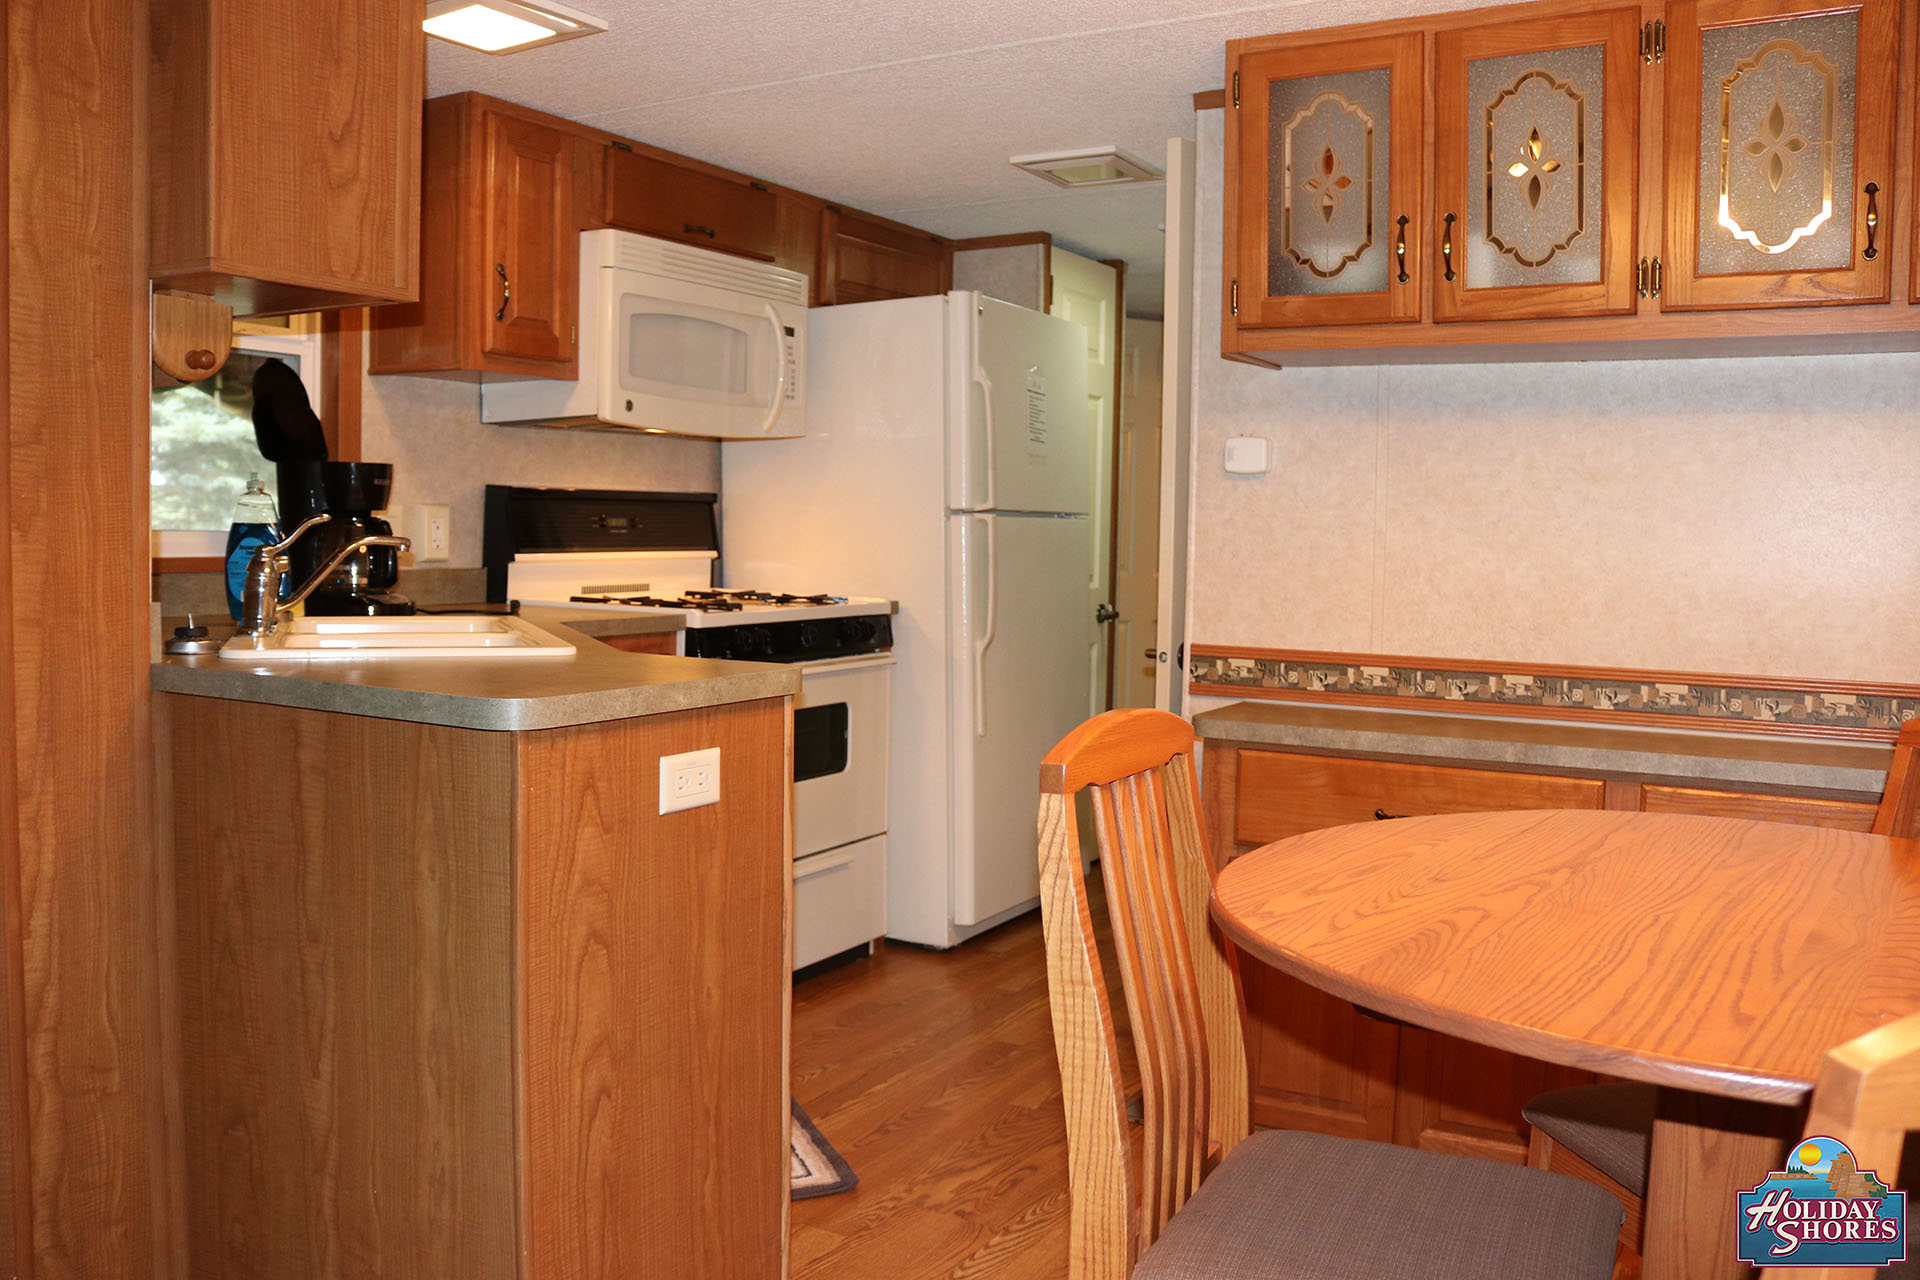 Holiday Shores Deluxe Park Model 6